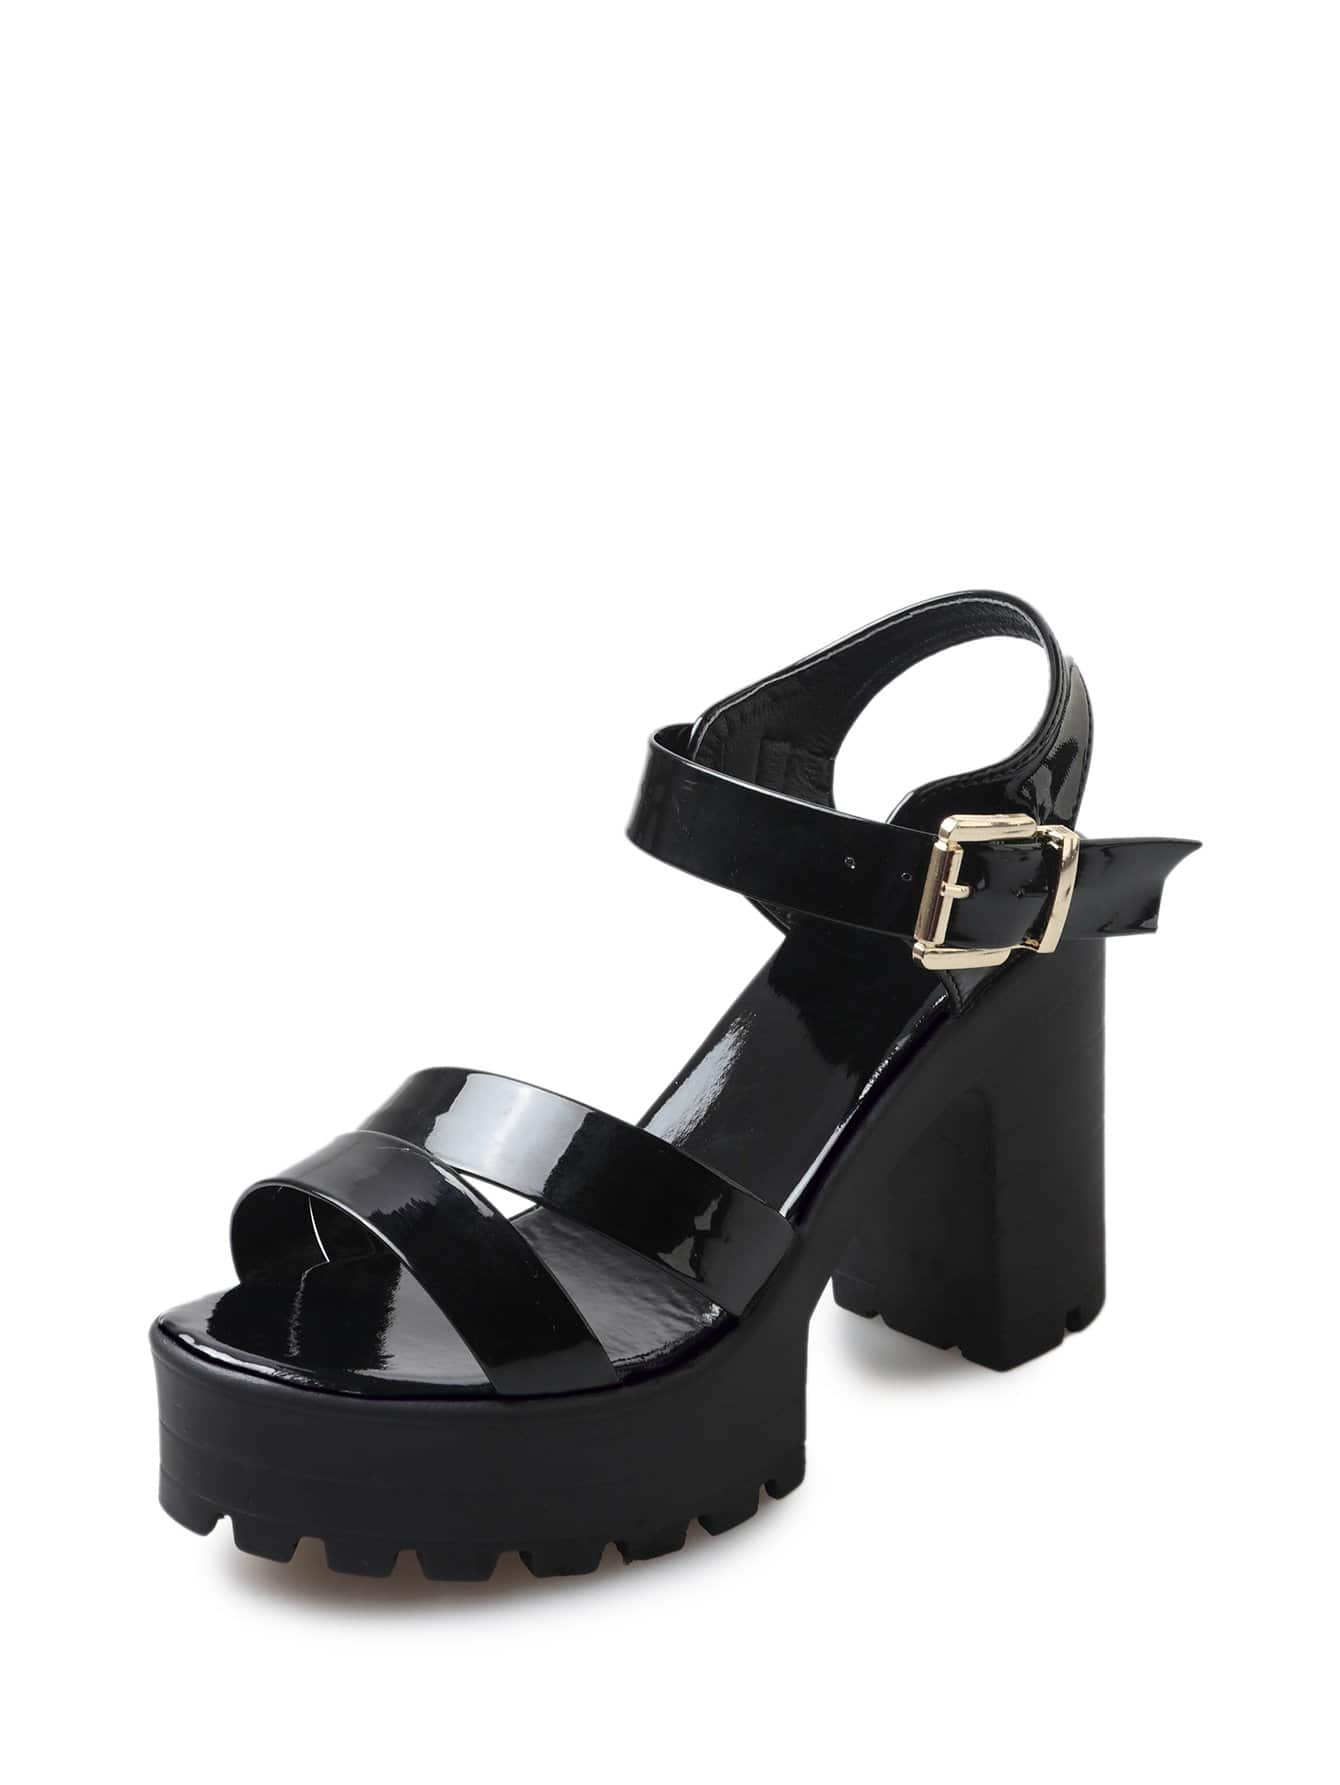 dd98e1fdc857 Buckle Strap Platform Sandals EmmaCloth-Women Fast Fashion Online